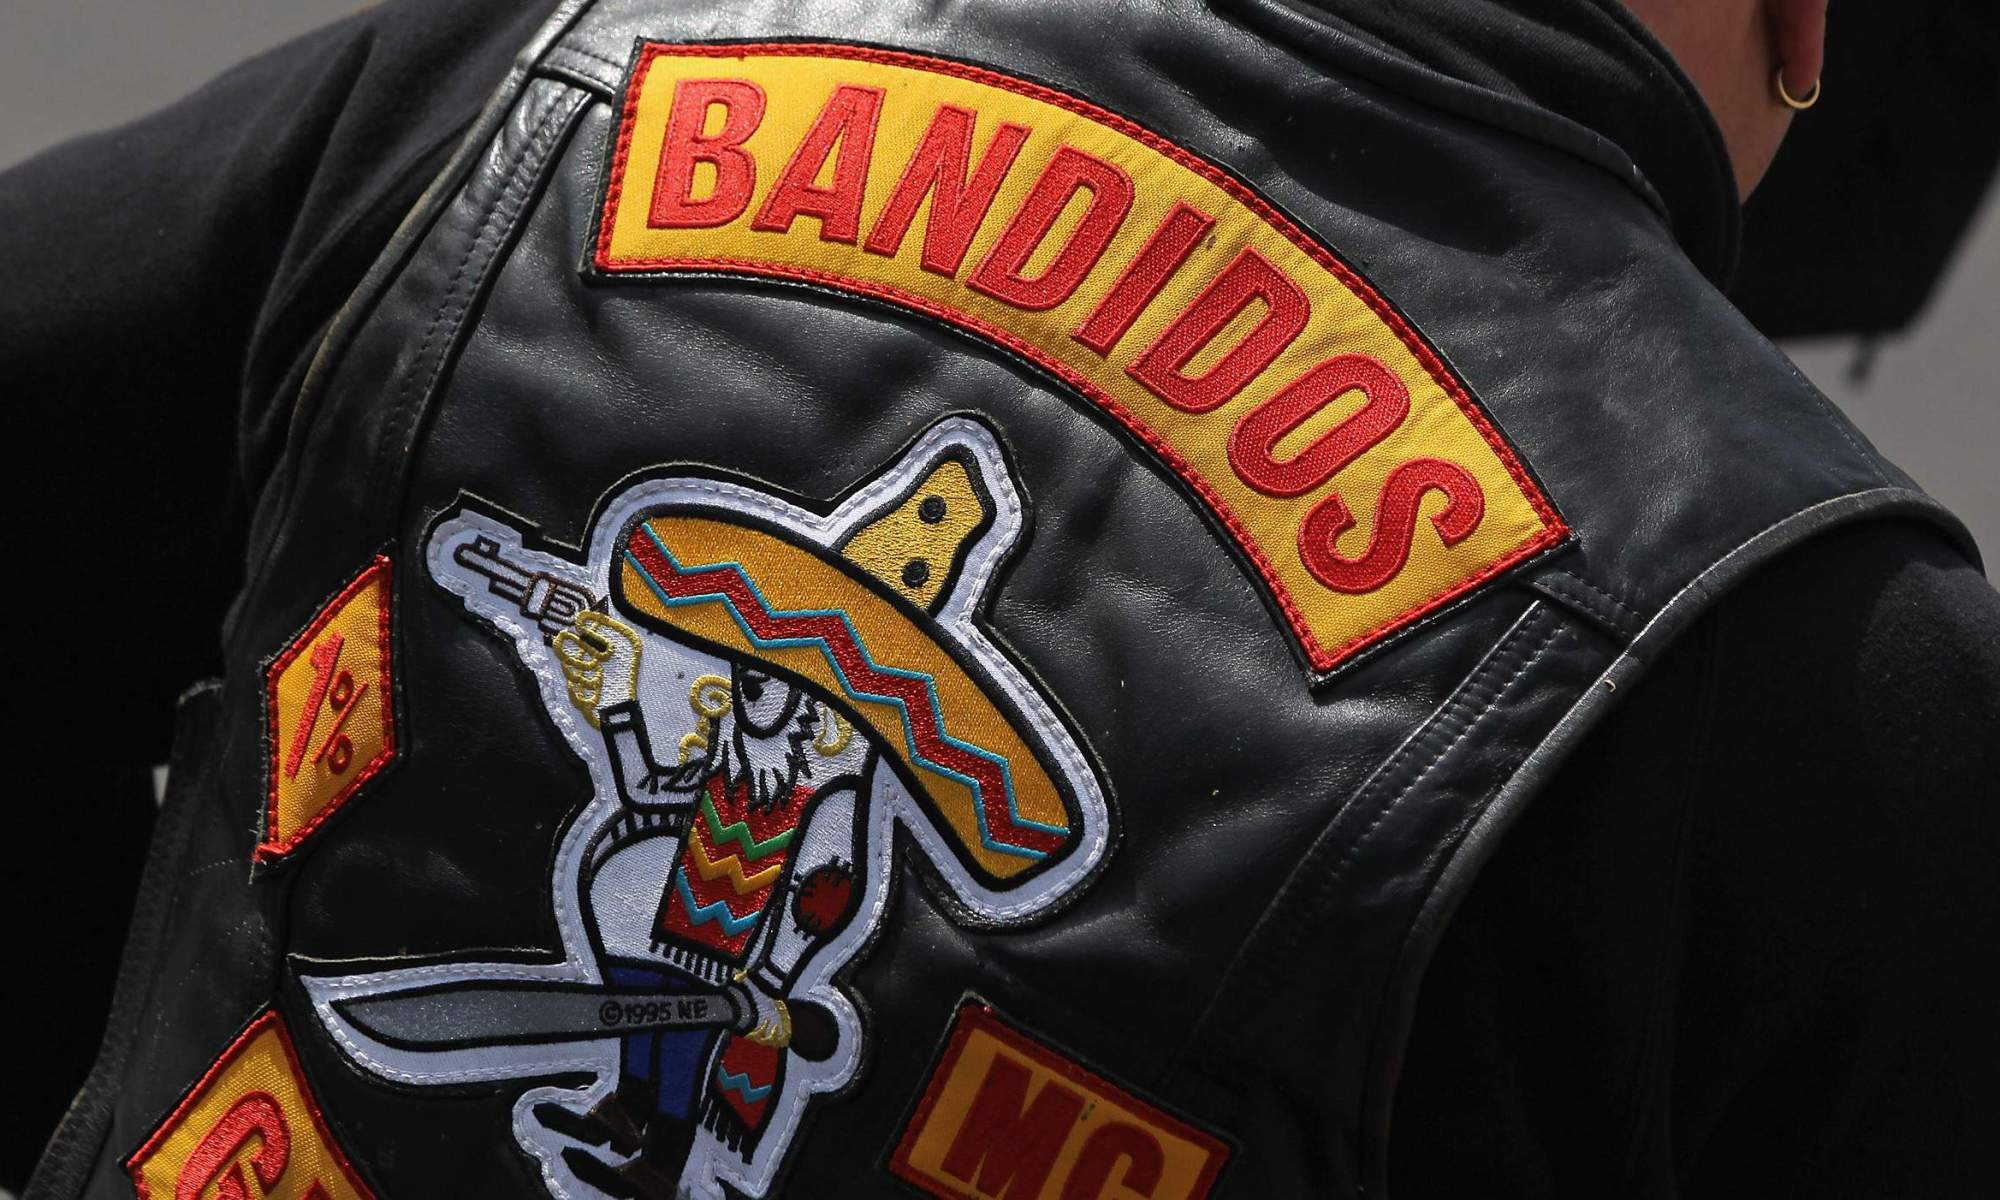 Bandidos MC insane Throttle Biker News